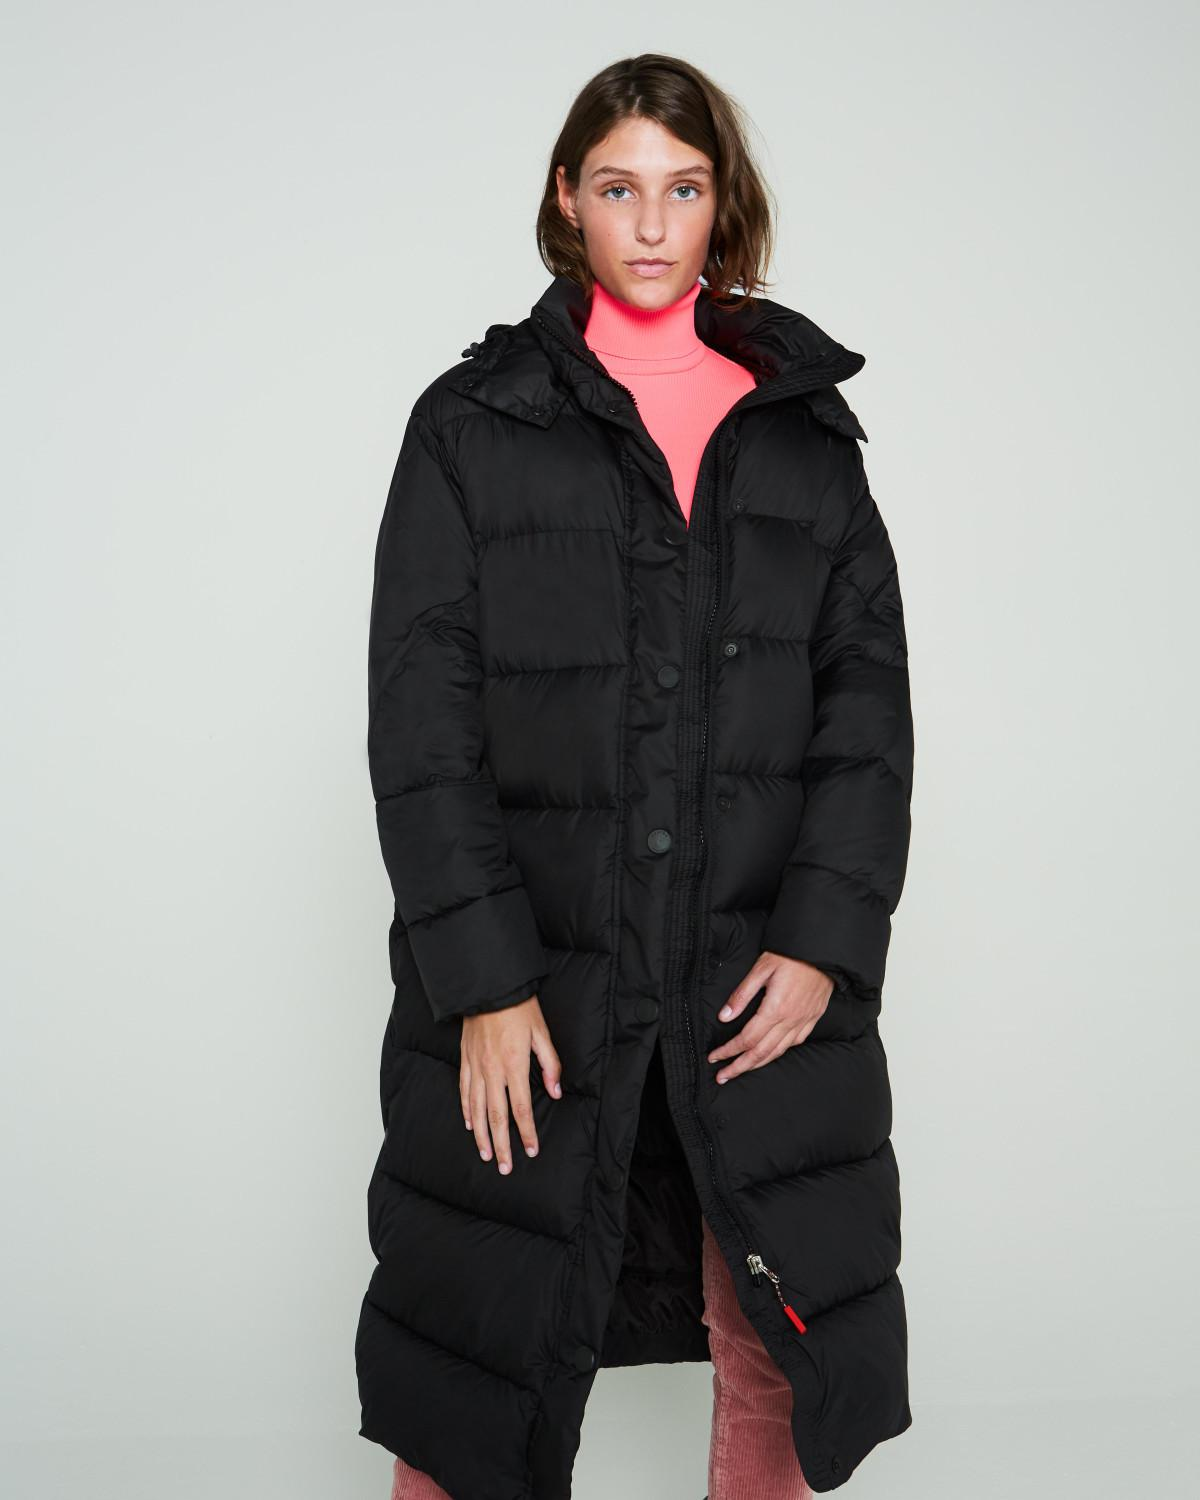 6531248f69465 HUNTER Original Long Puffer Coat in Black - Lyst